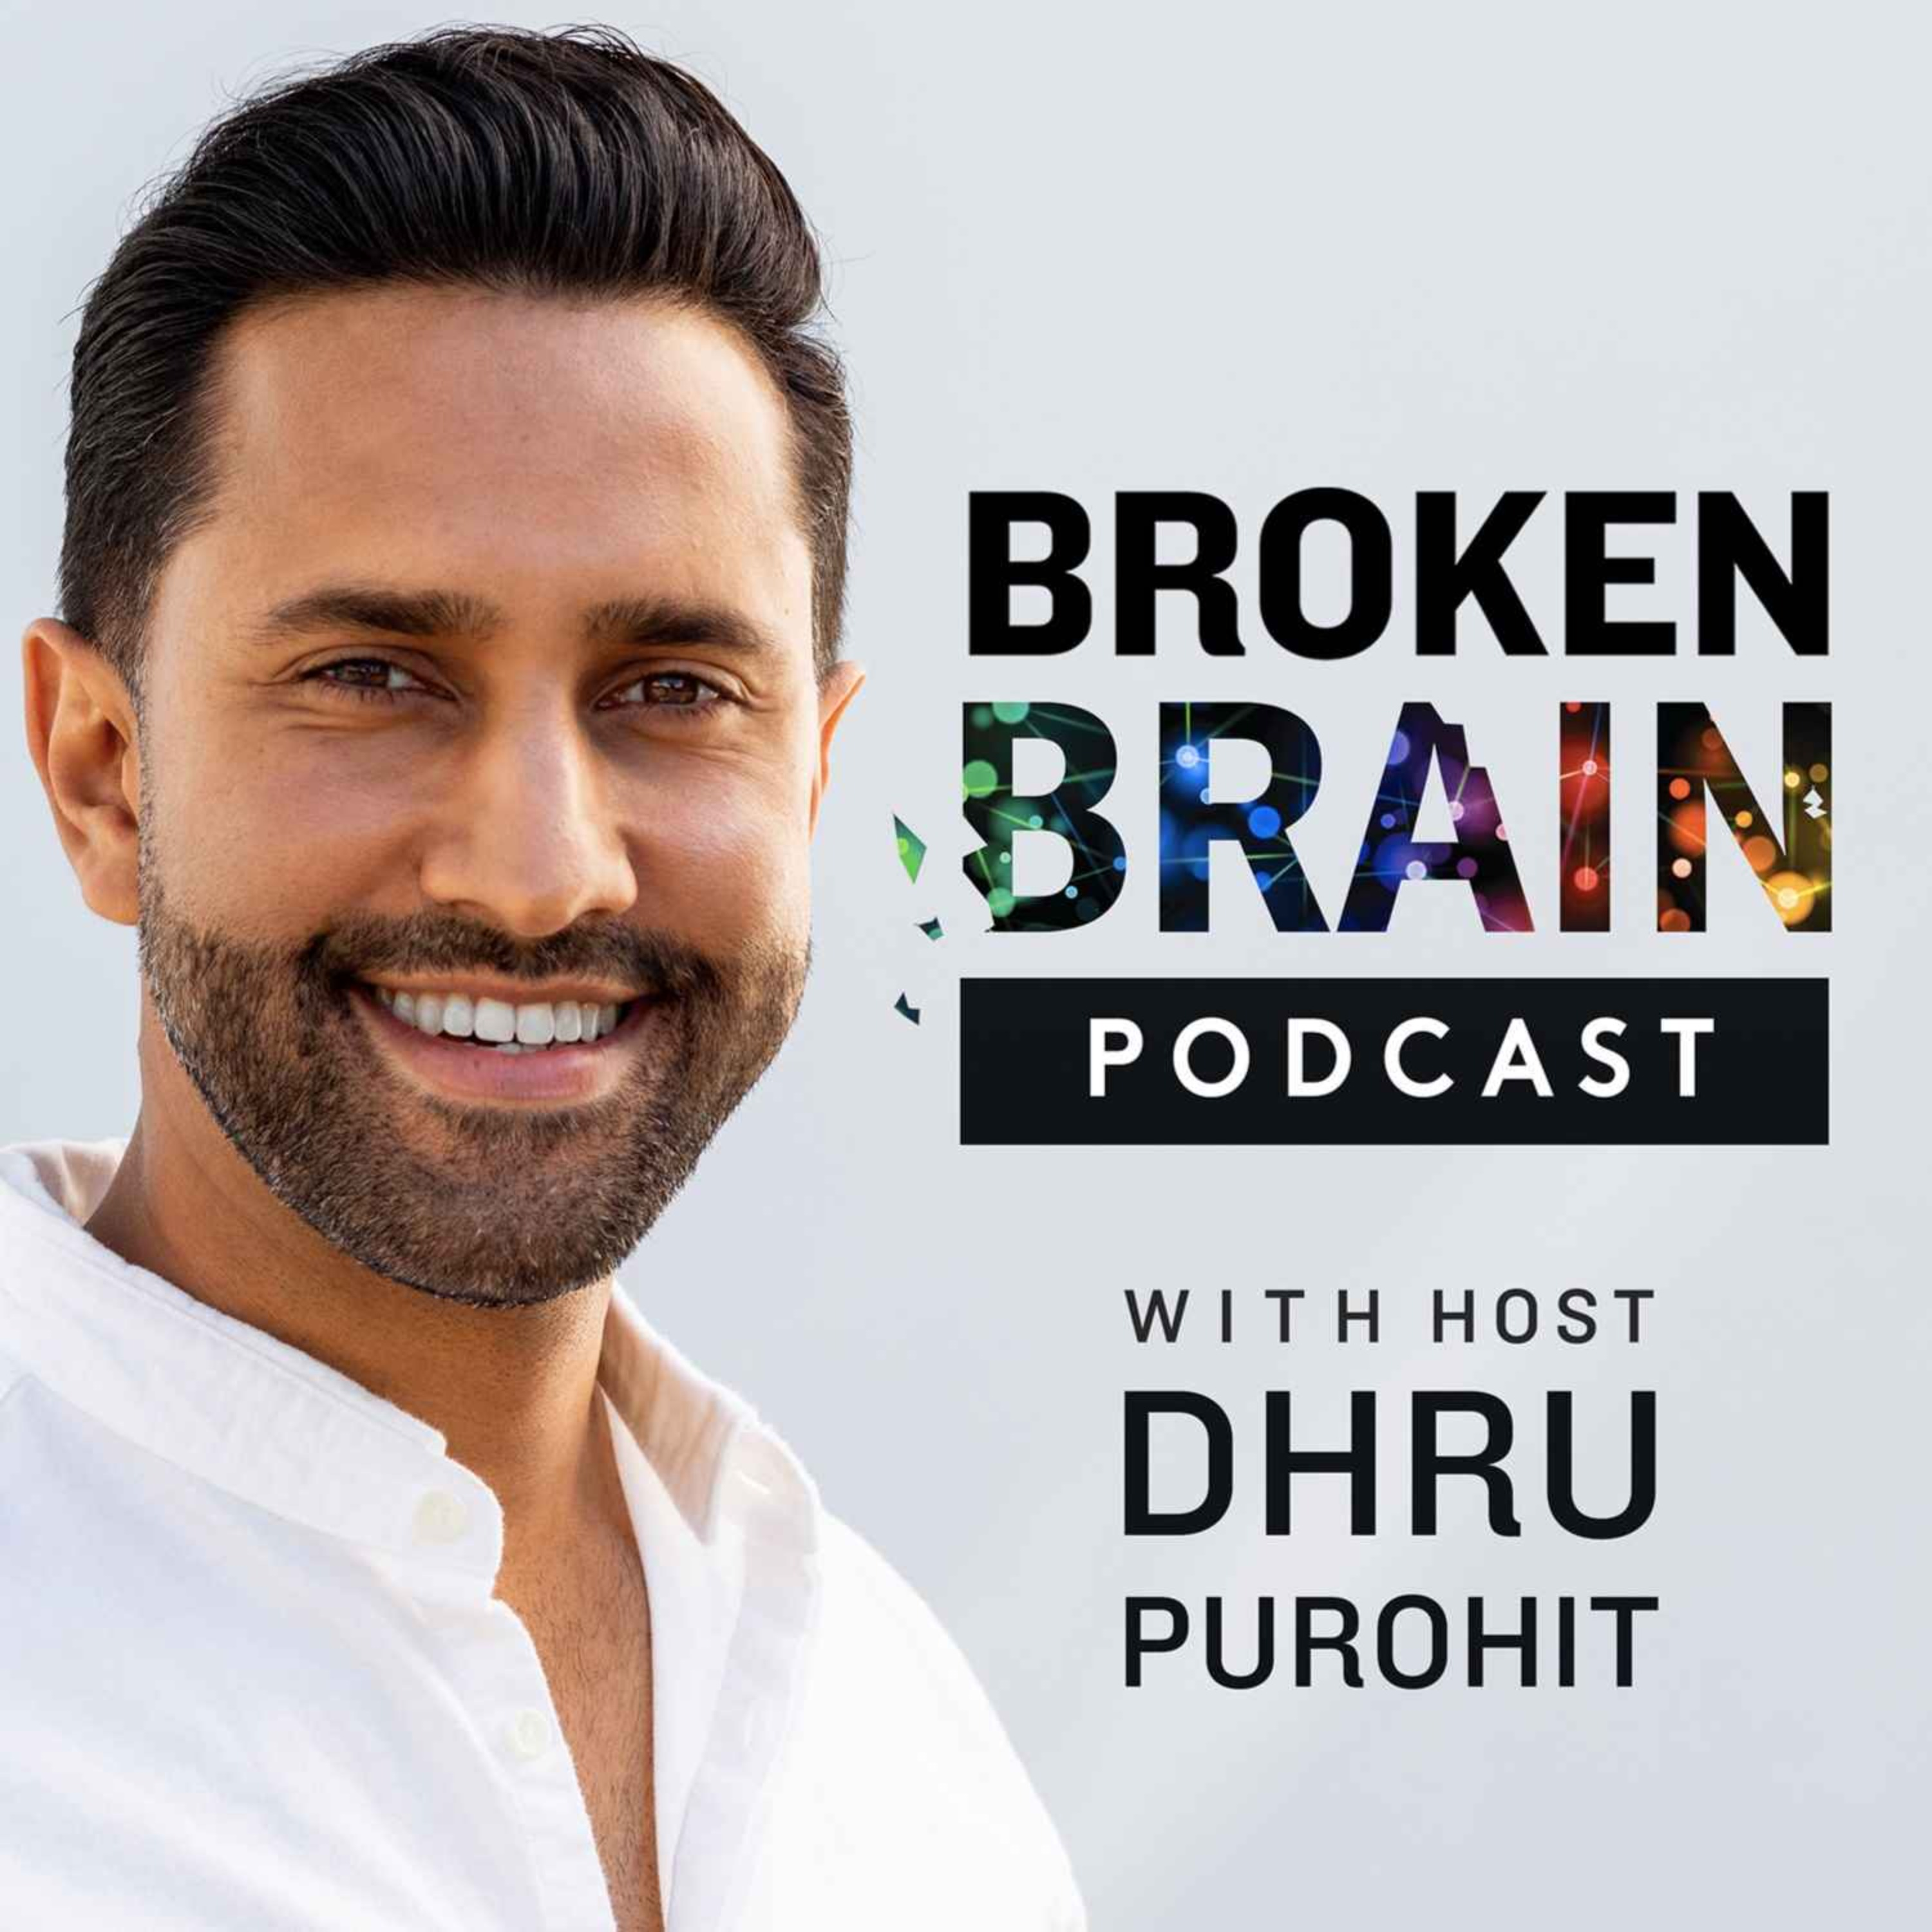 #188: Ask Dhru Anything: Switching Your Career, Tips for Brain Fog, and Supporting Your Immune System